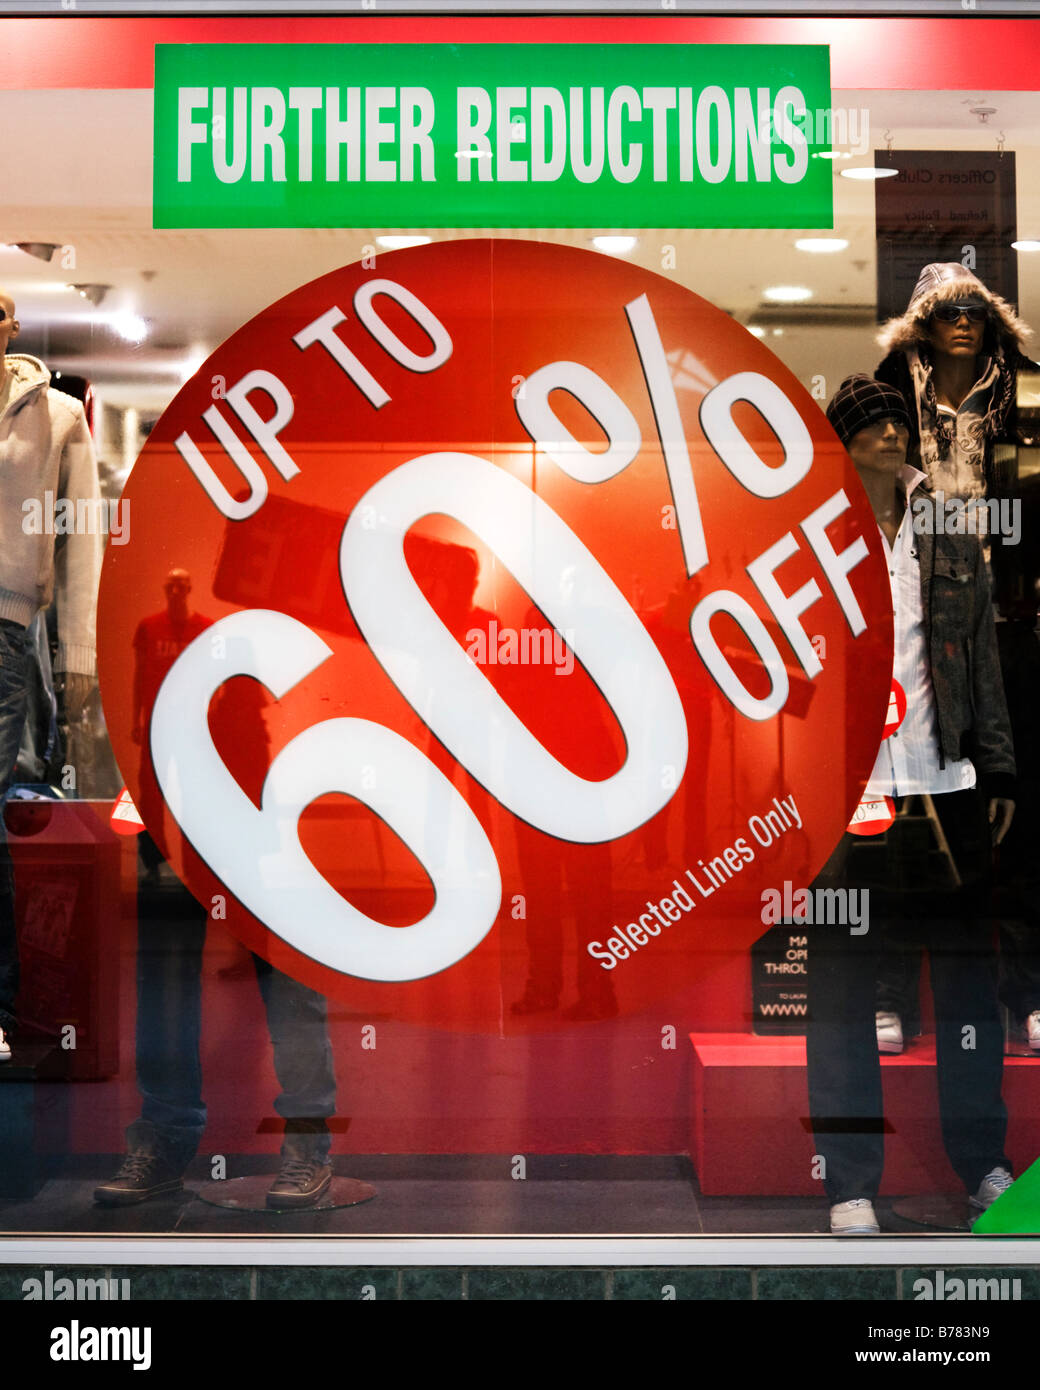 Sign in Officer's Club clothing retailer's store window advertising up to 60% off. - Stock Image